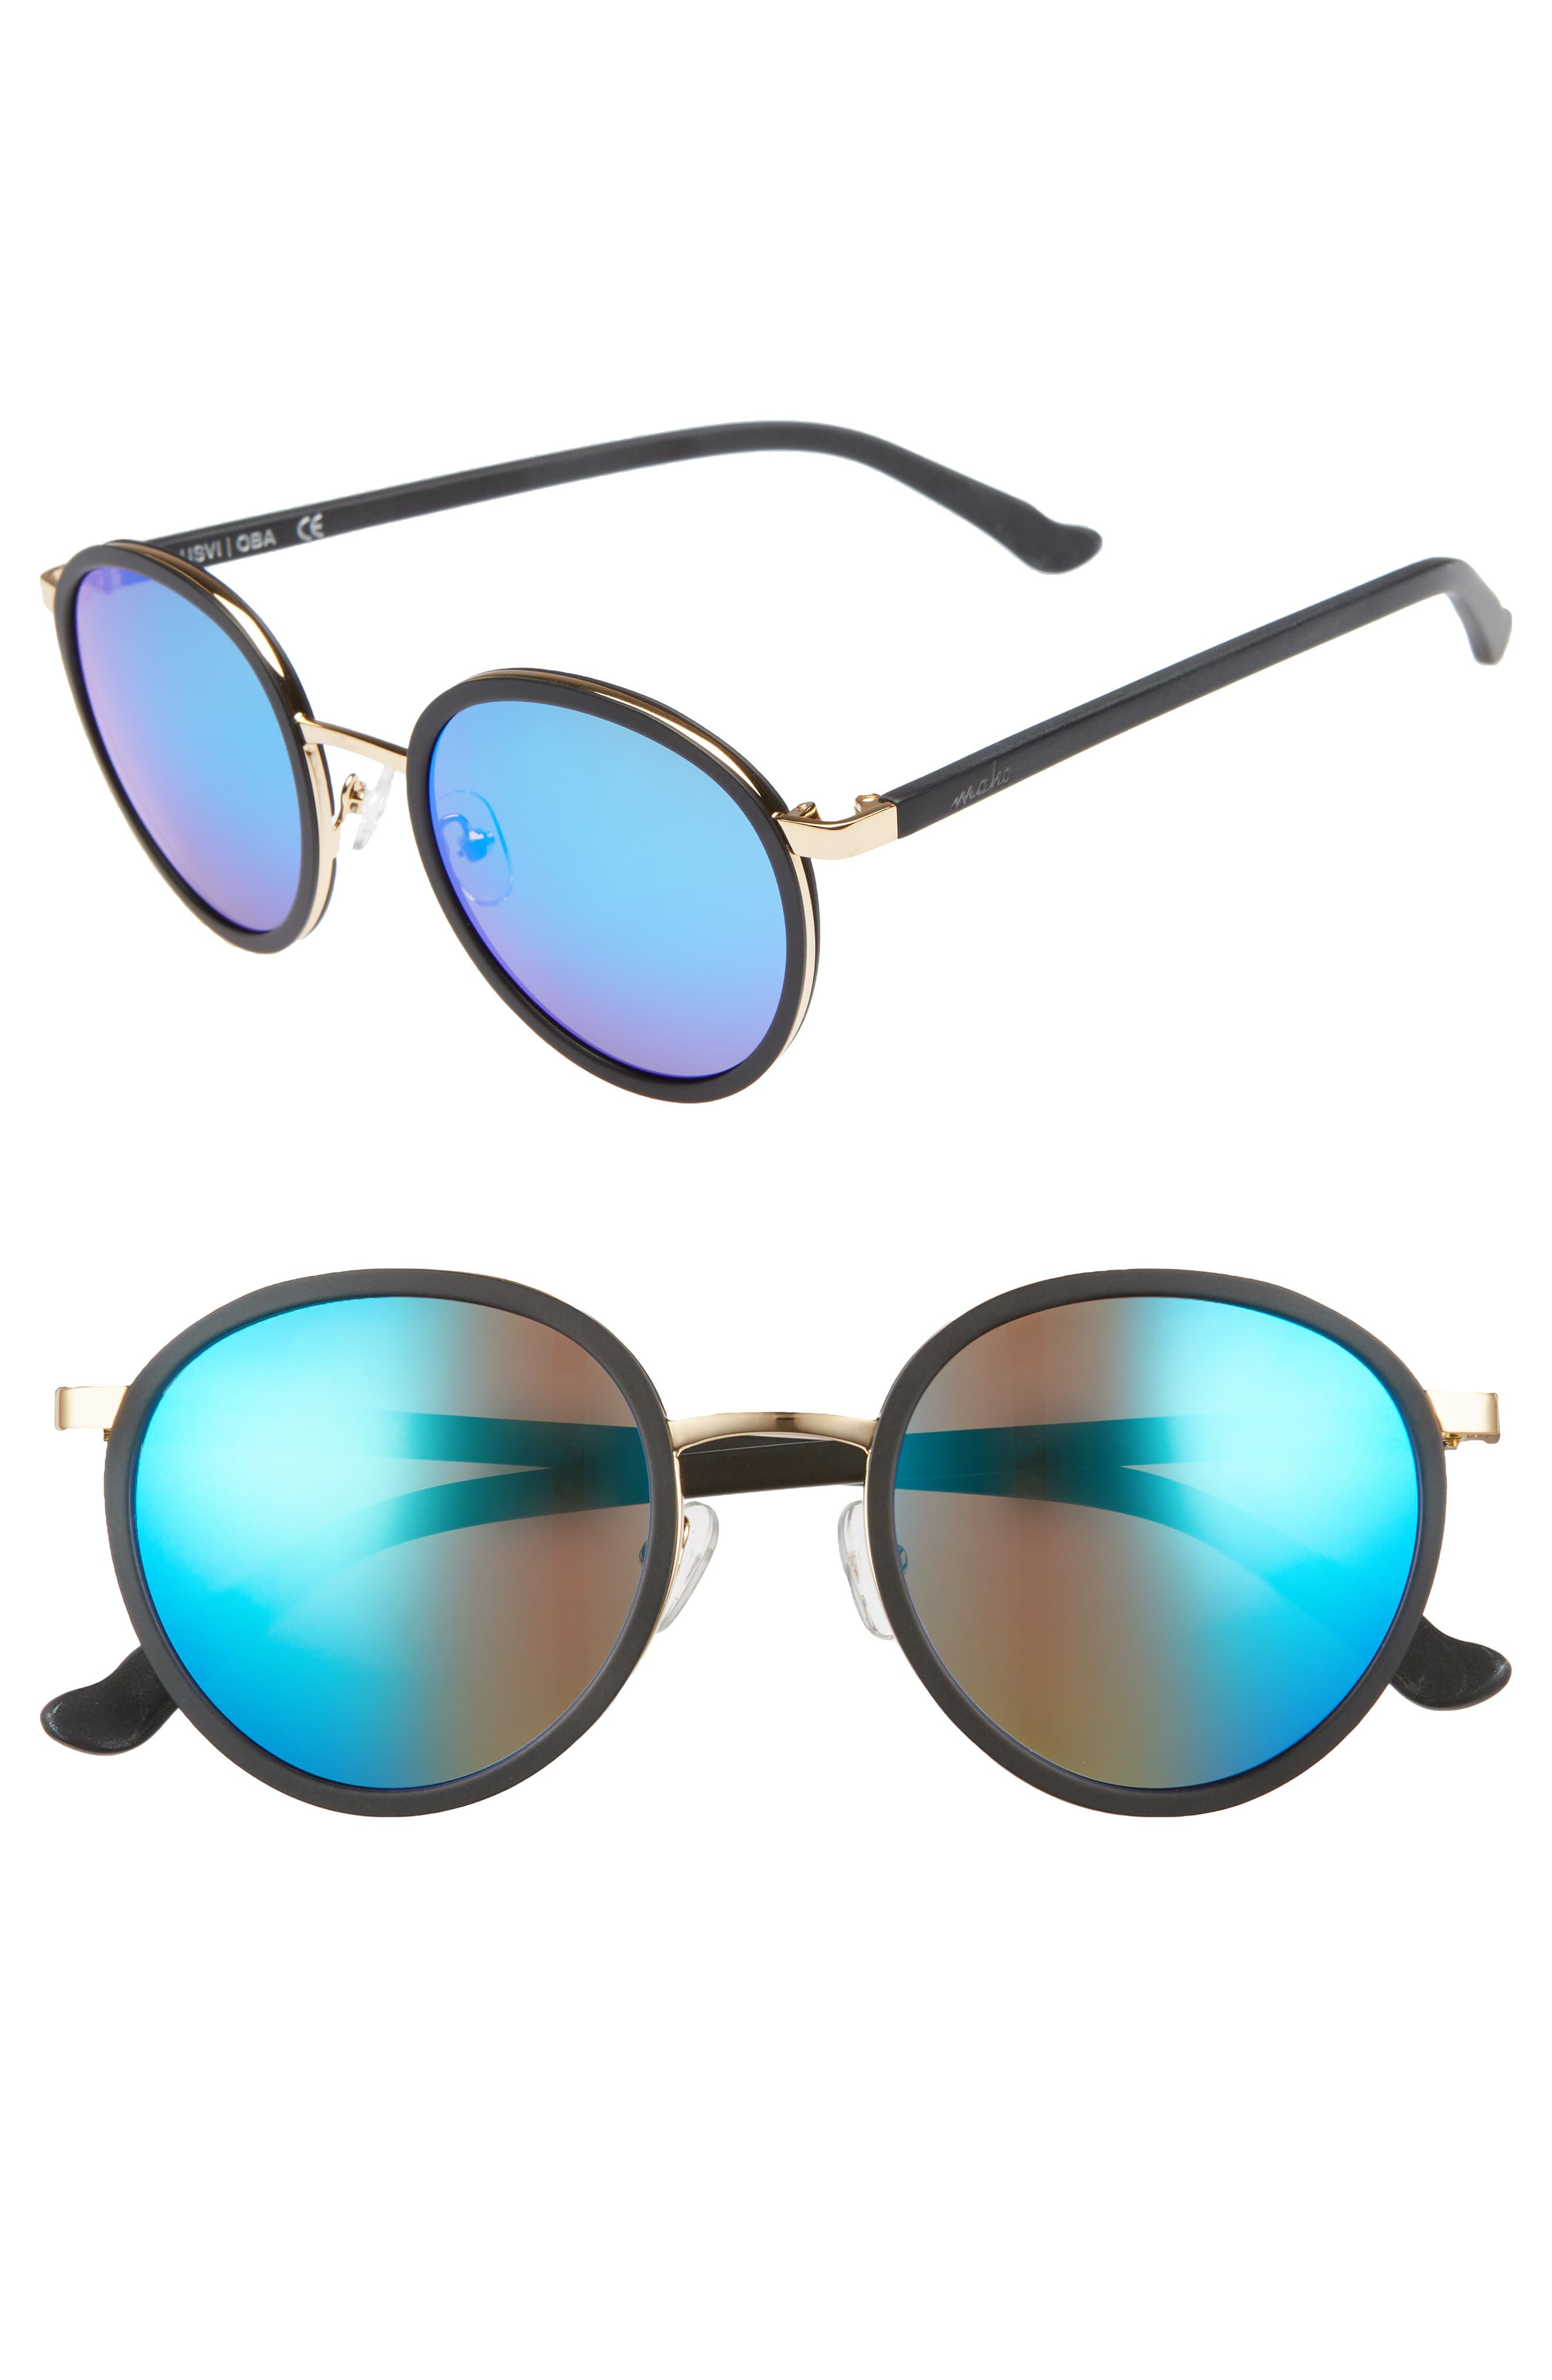 Cabo 50mm Polarized Round Sunglasses,                             Main thumbnail 1, color,                             Charcoal/ Blue